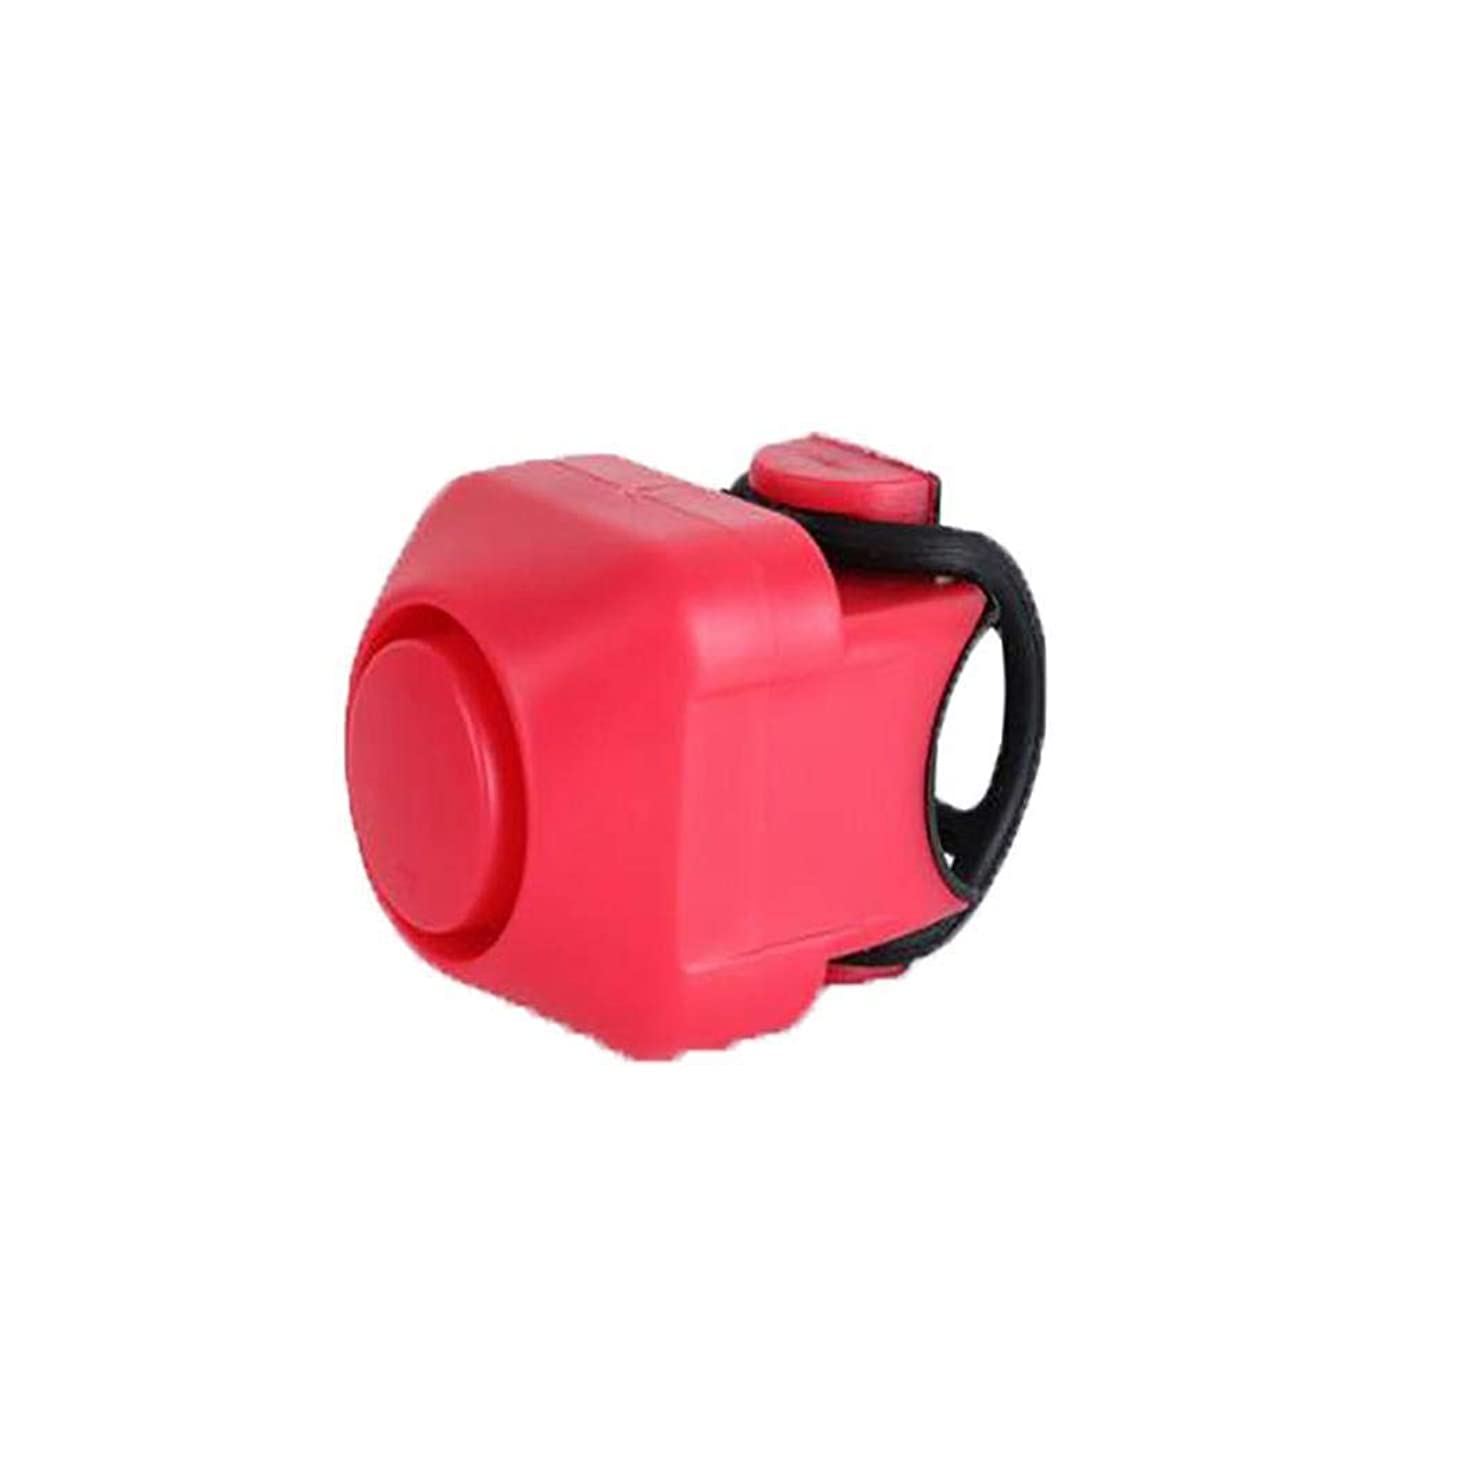 Youandmes Mini Cute Plastic Electric Bell Bike Handlebar Bell Bicycle Accessories Bike Bells